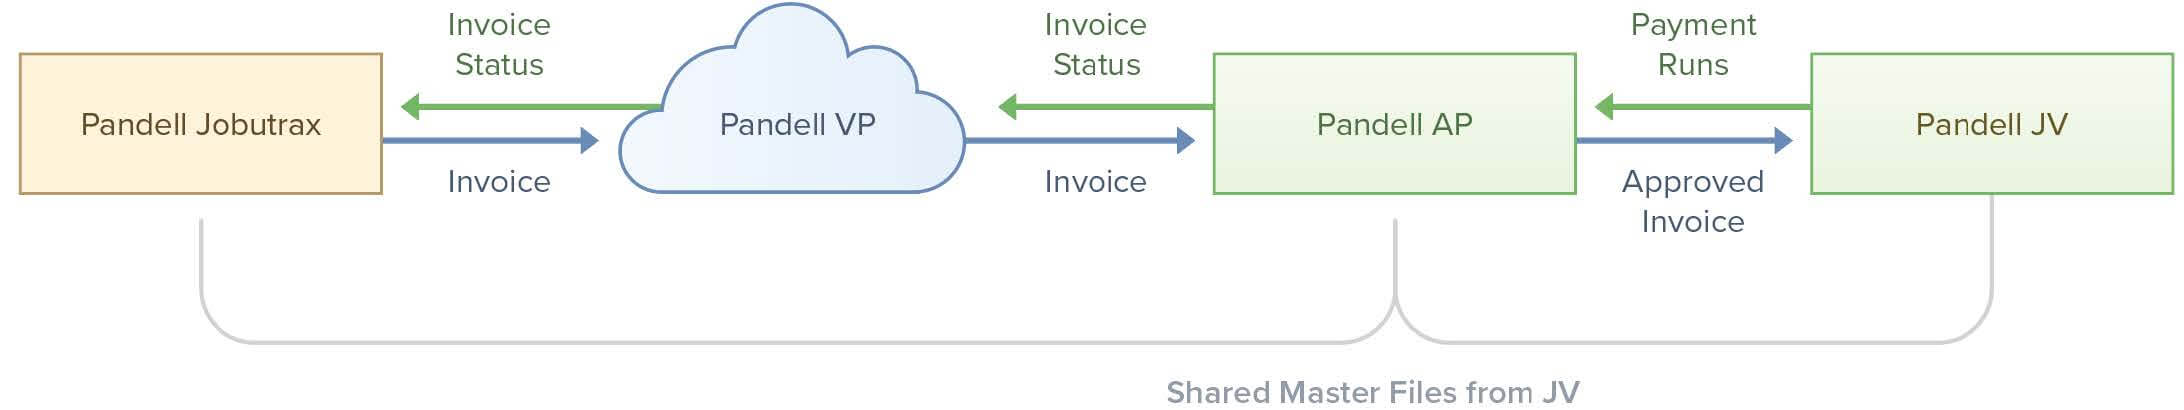 Diagram illustrating the accounting workflow between a vendor and an energy company using Pandell's end-to-end financial suite